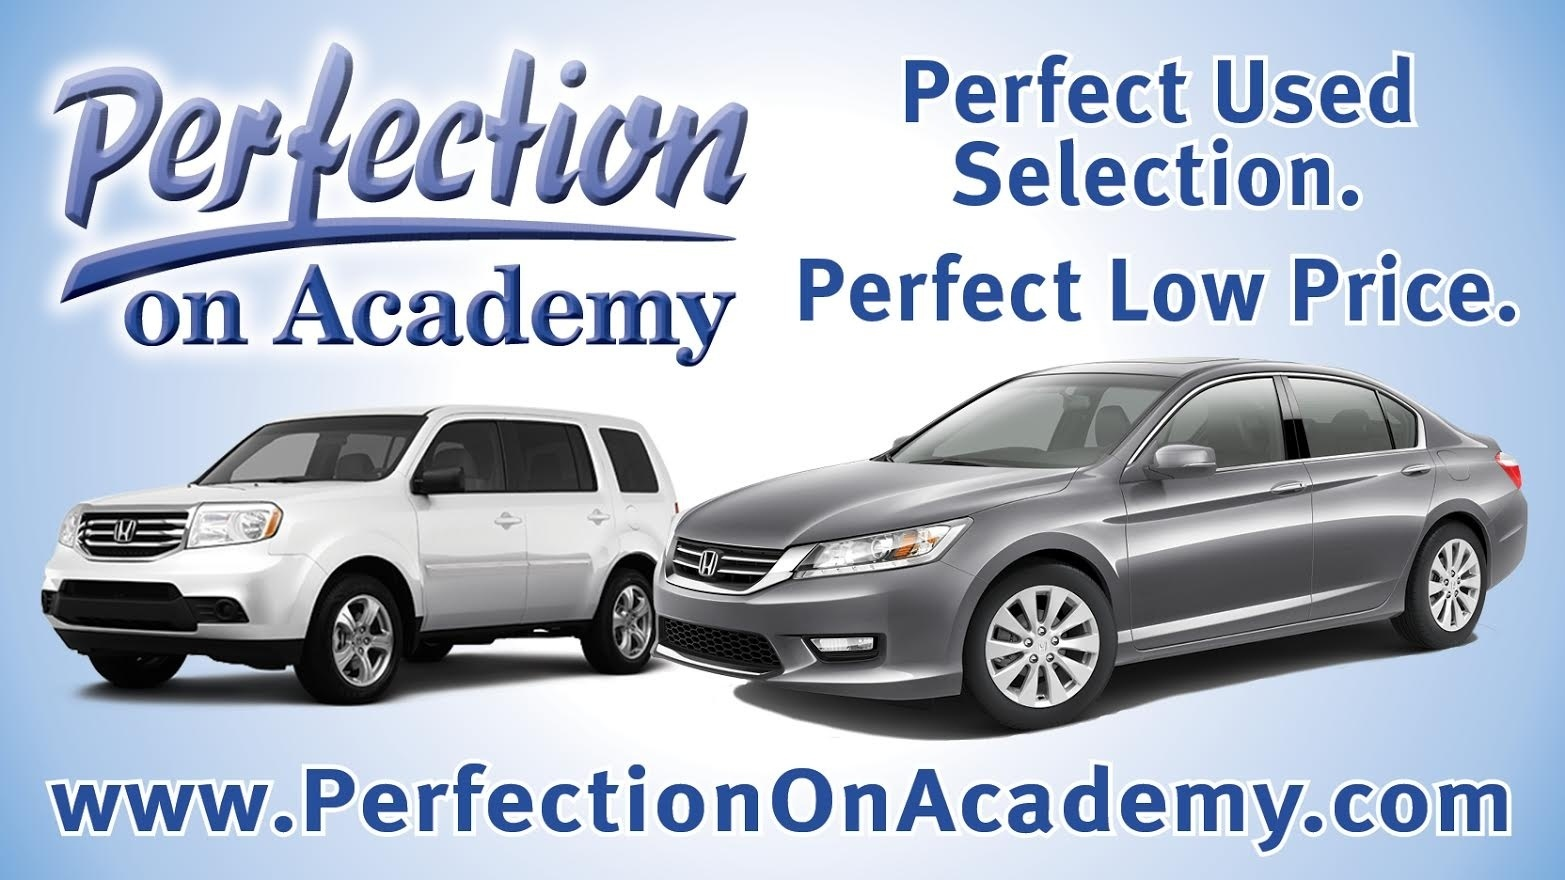 Nice Perfection Auto Sales U0026 Service On Academy   Albuquerque, NM: Read Consumer  Reviews, Browse Used And New Cars For Sale